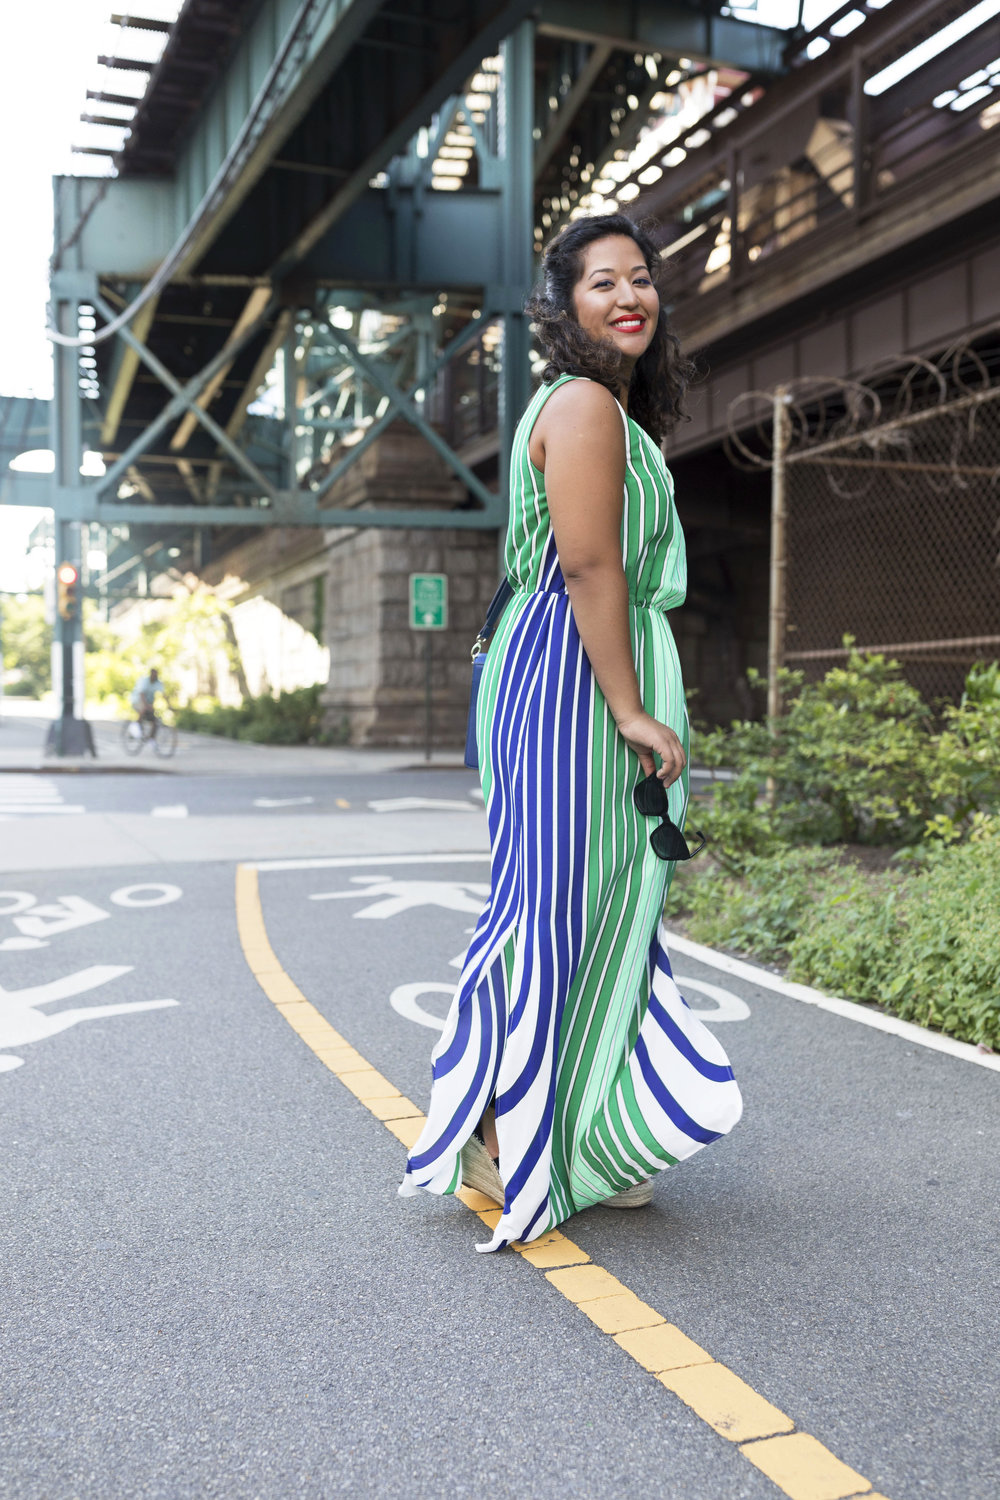 Krity S x Adrianna Papell x Stripped Maxi3.jpg